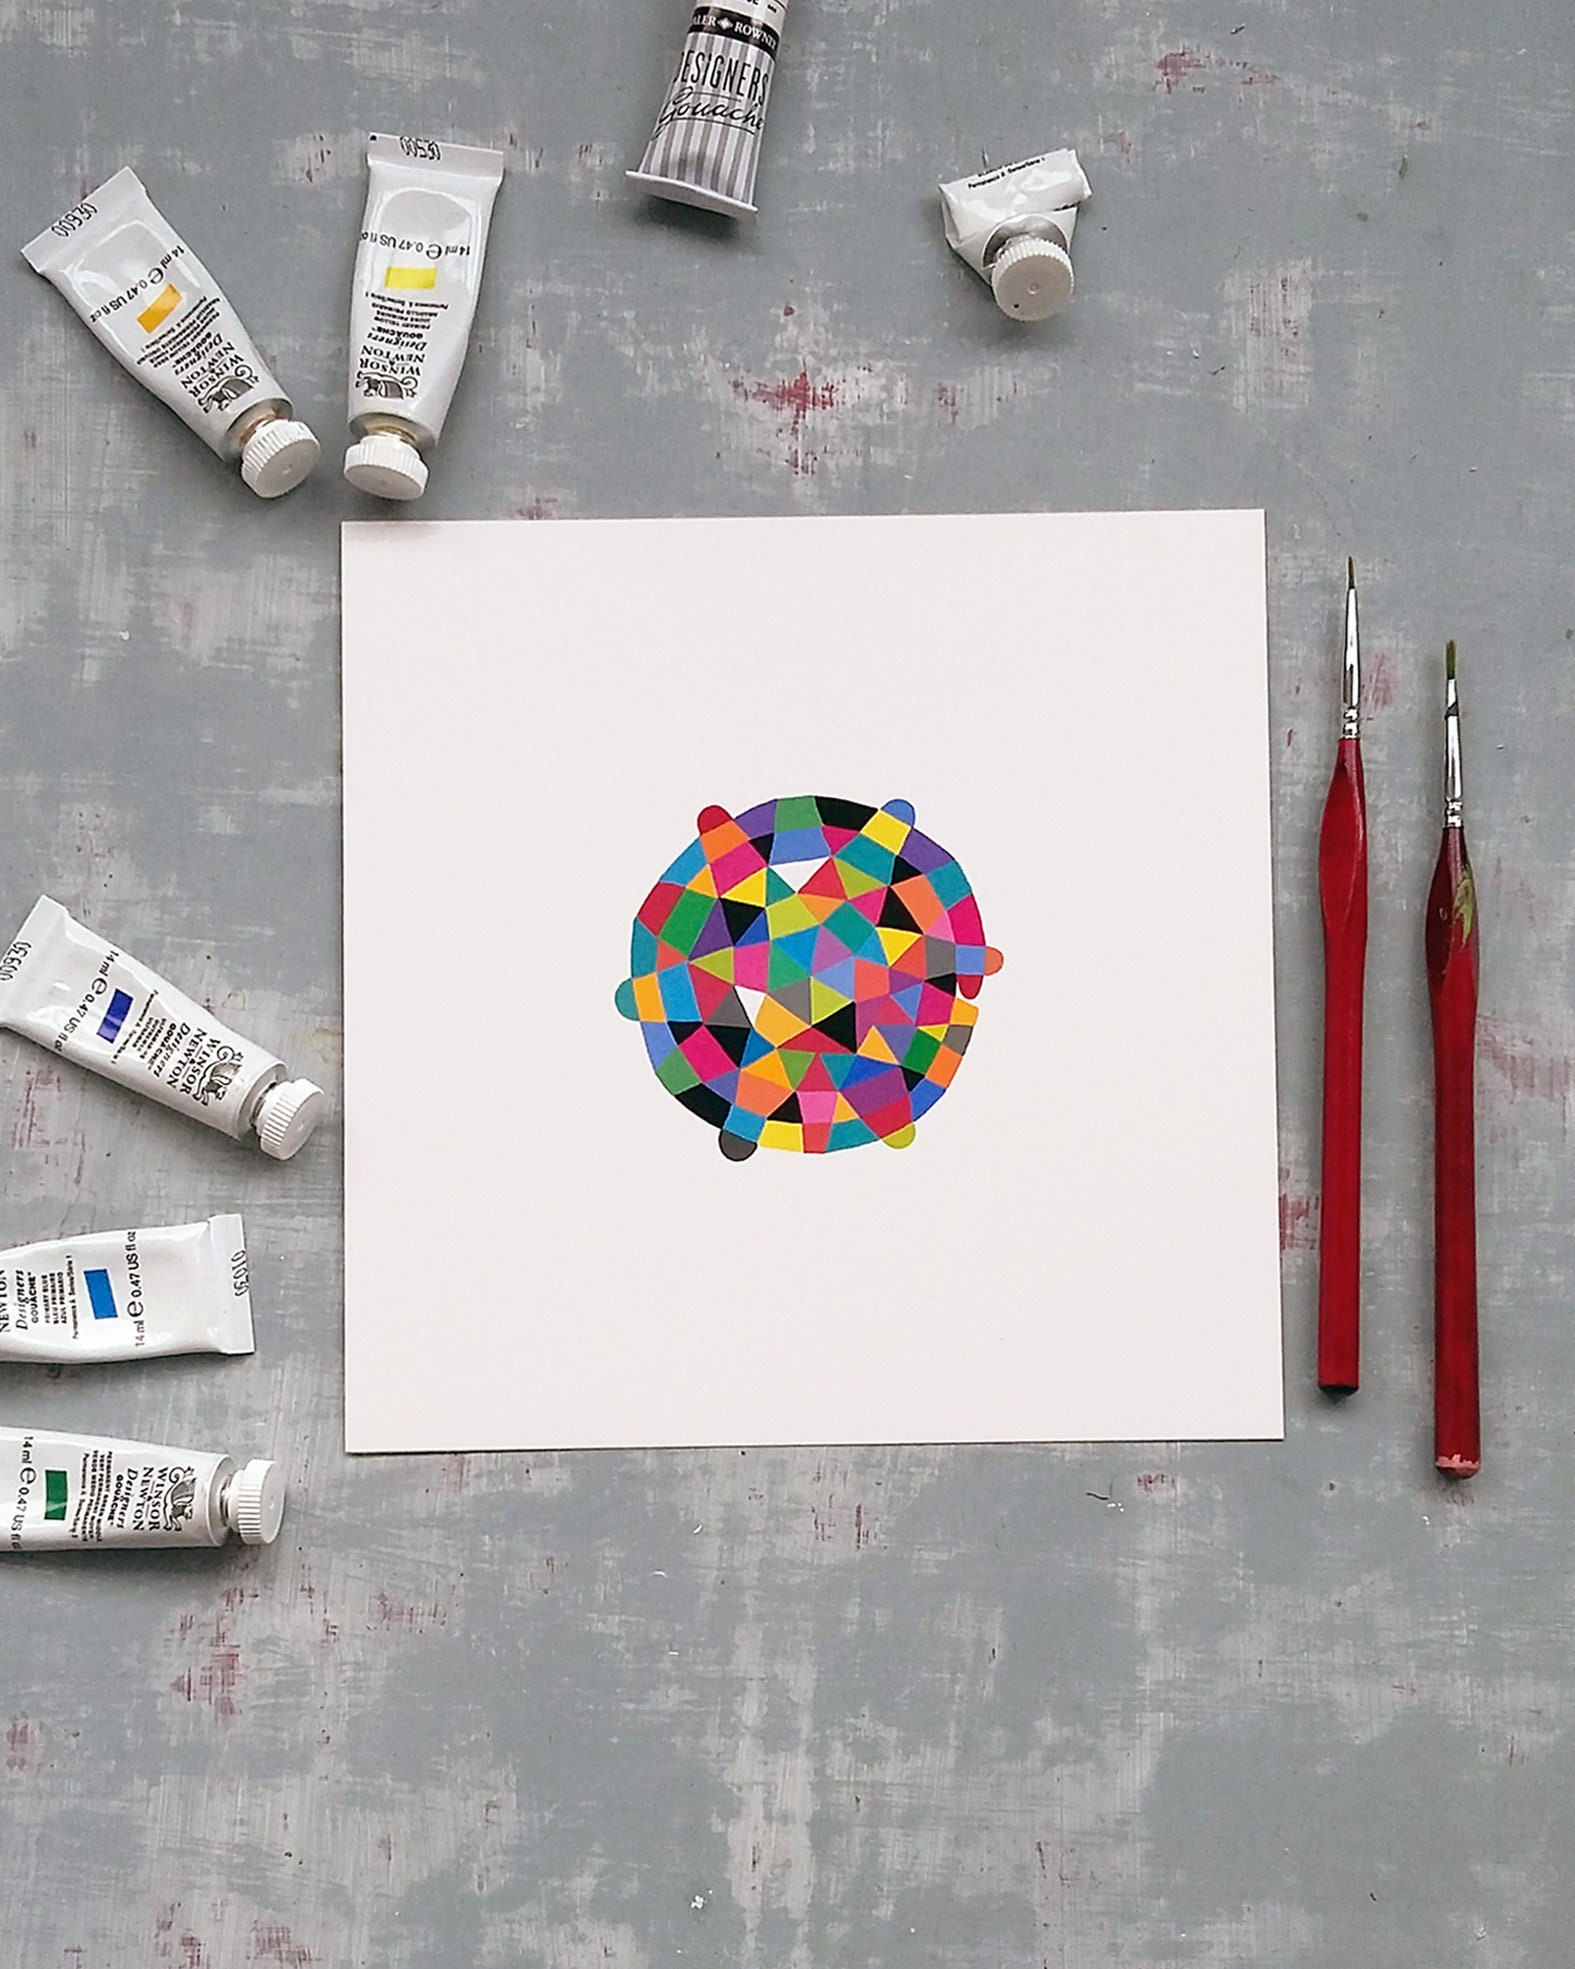 Round_shape_001, original abstract artwork - product image